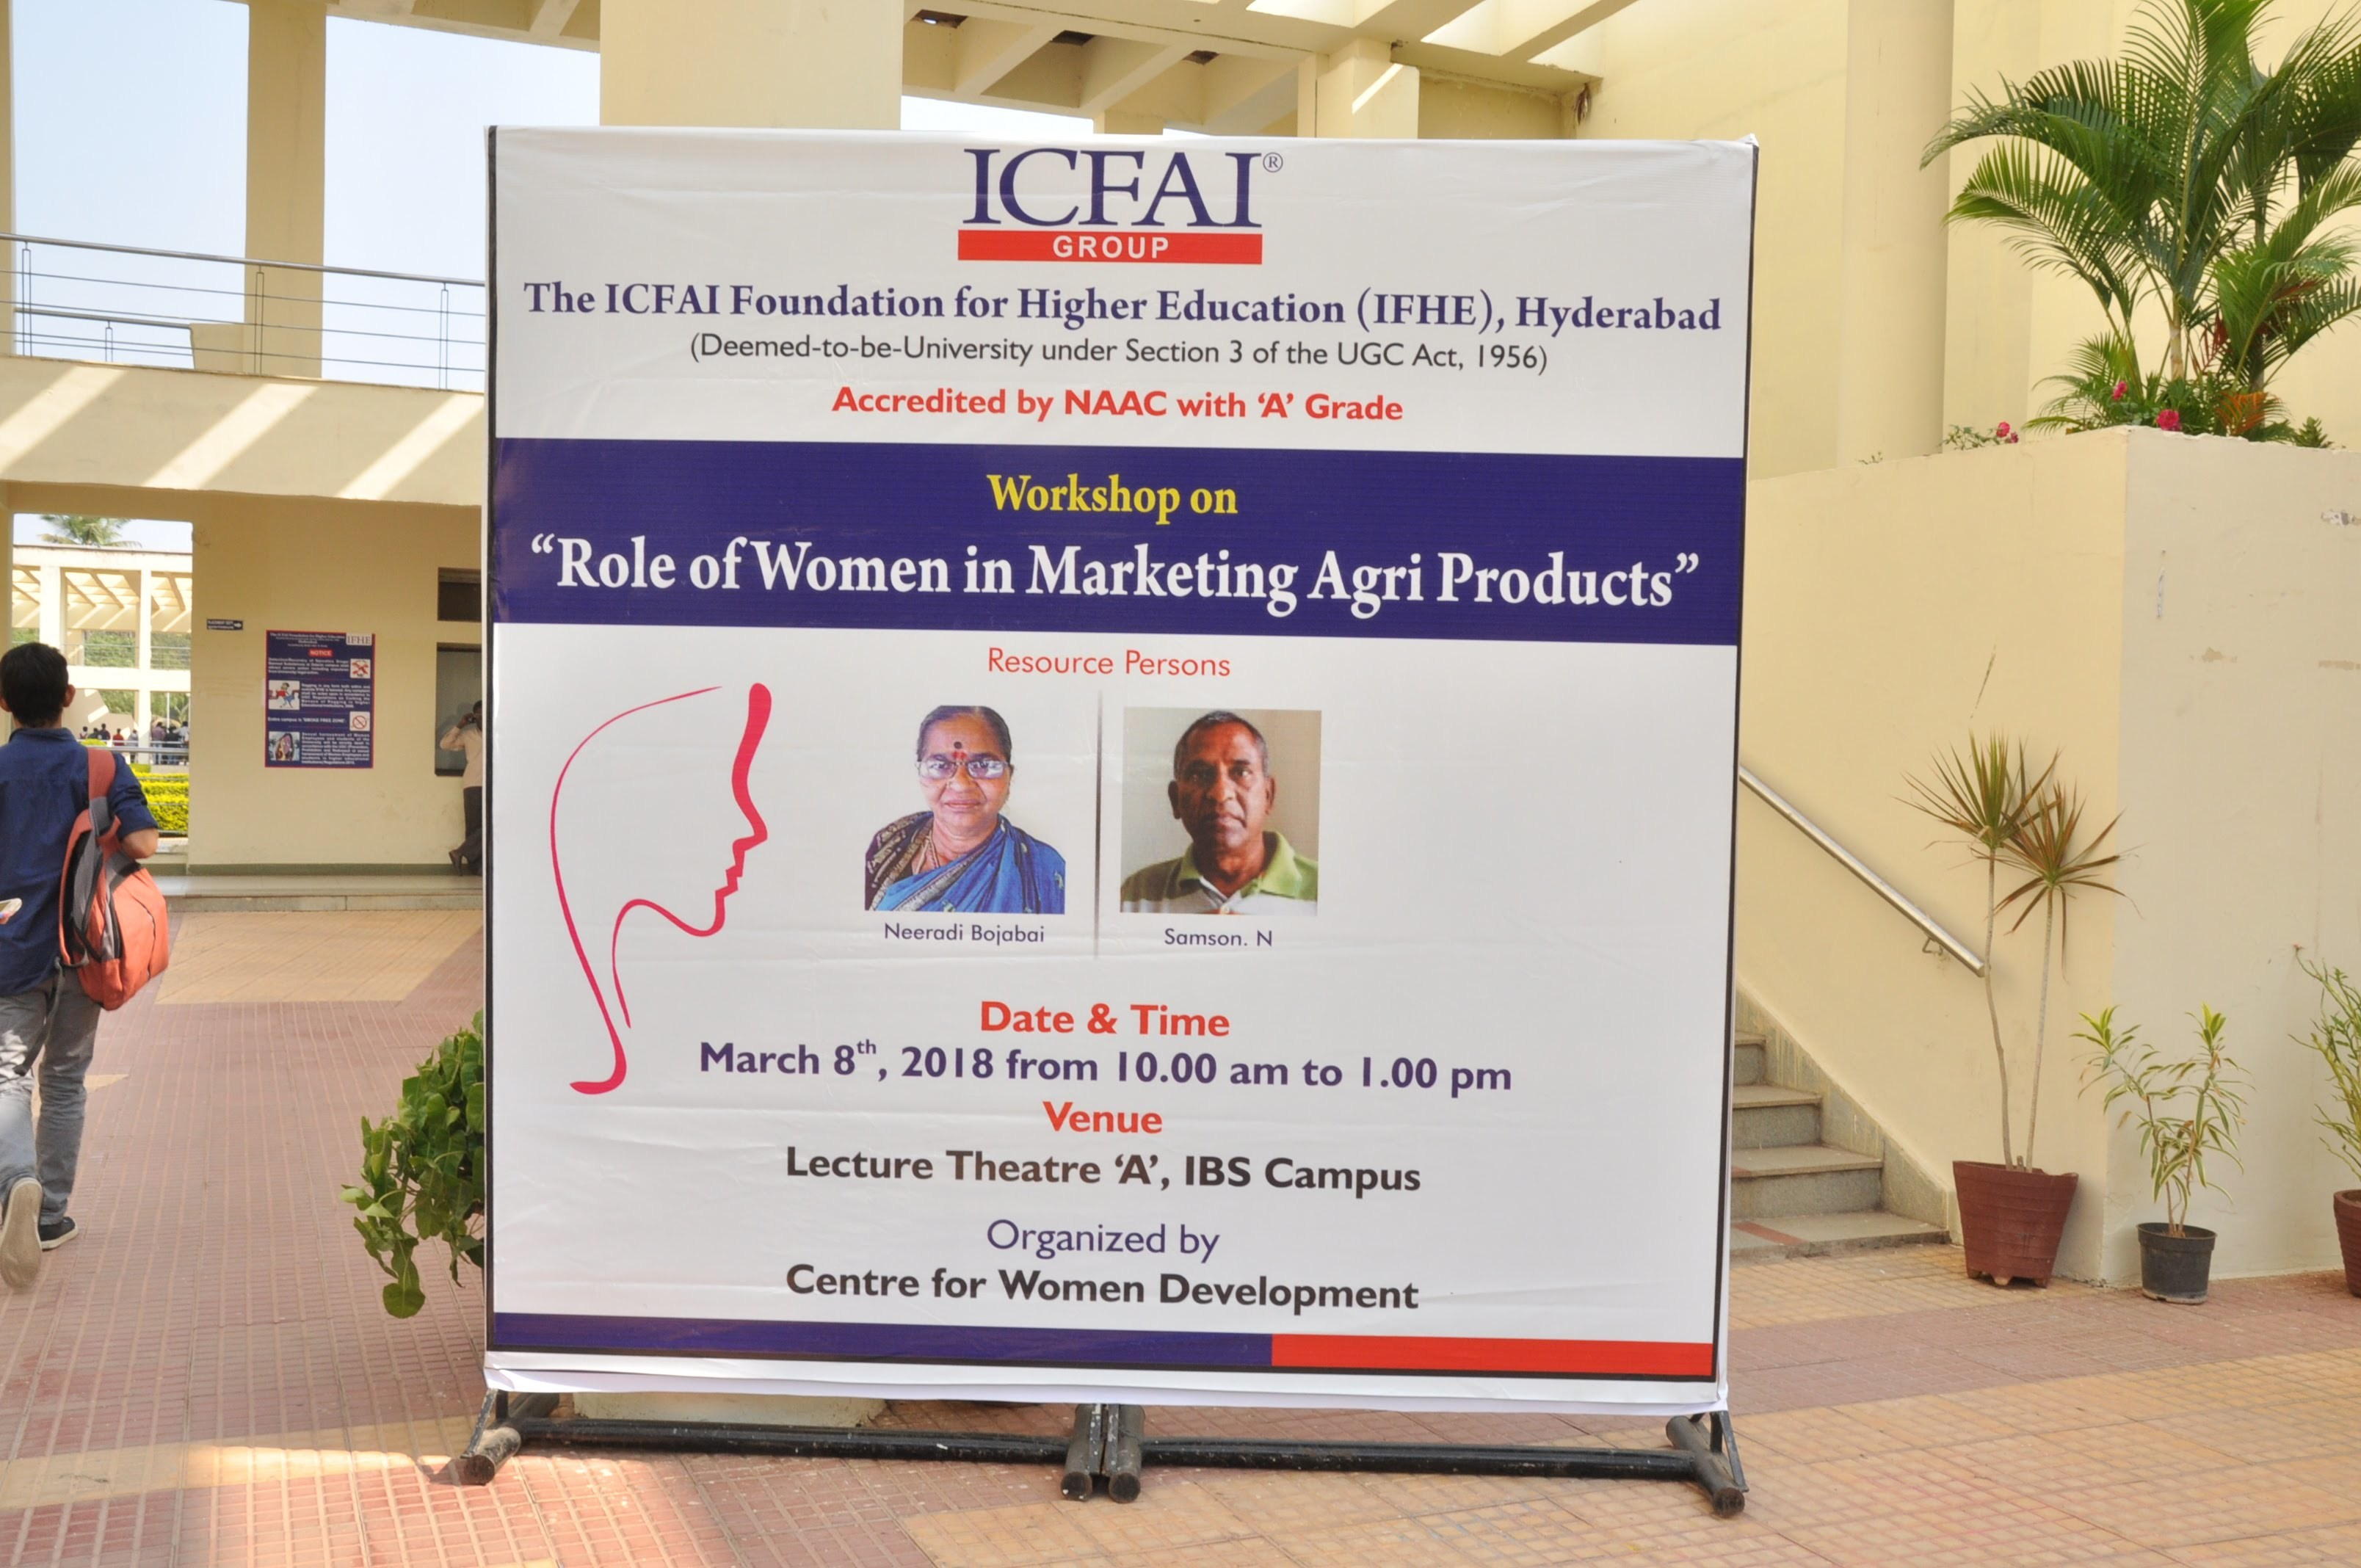 Neeradi Bojabai head of the federation of village cooperatives selling agricultural products, and facilitator Samson Nakkala spoke at a workshop at a university about the role of women in marketing agricultural products